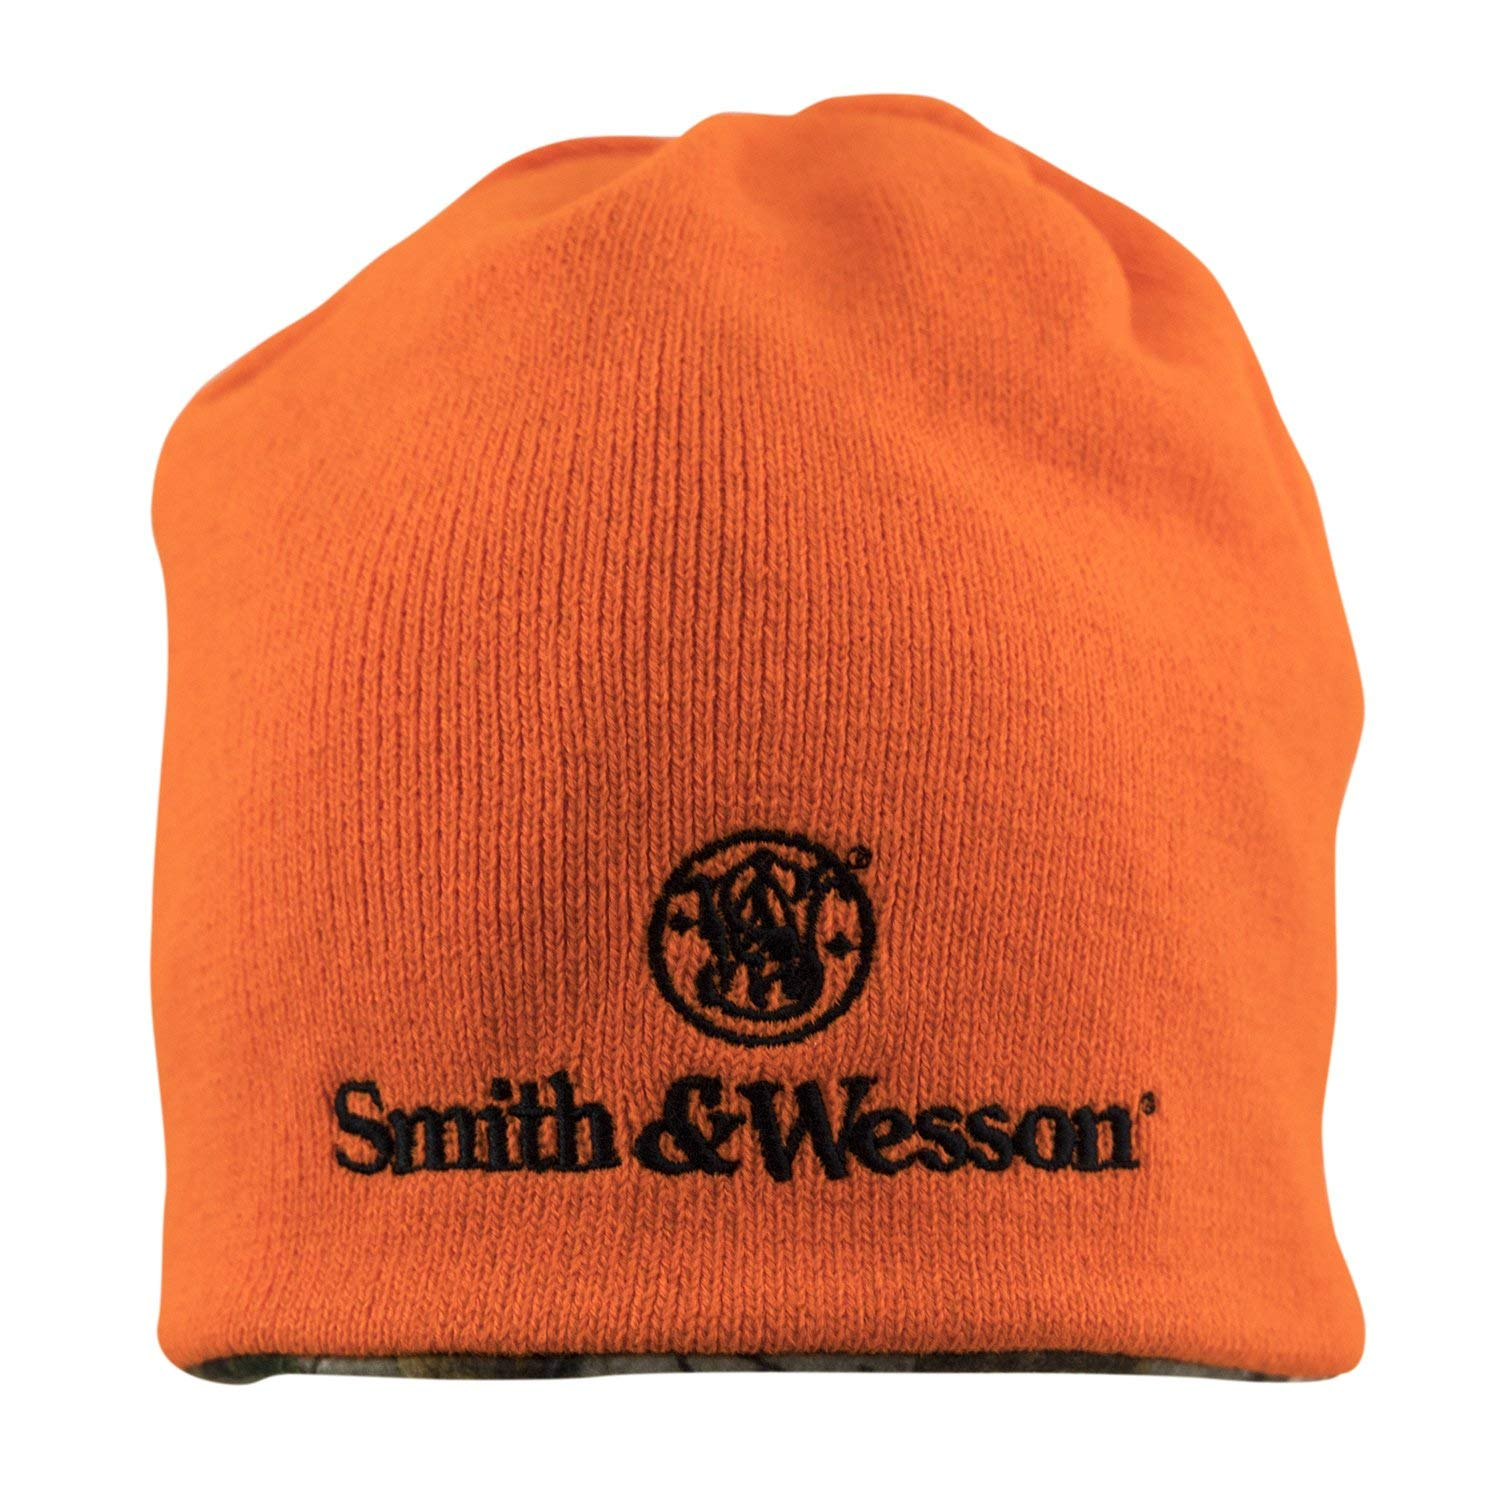 Smith   Wesson S W Mens Reversible Blaze Orange Camo Beanie with  Embroidered Stacked Logo - Officially Licensed at Amazon Men s Clothing  store  c685ff55d6e